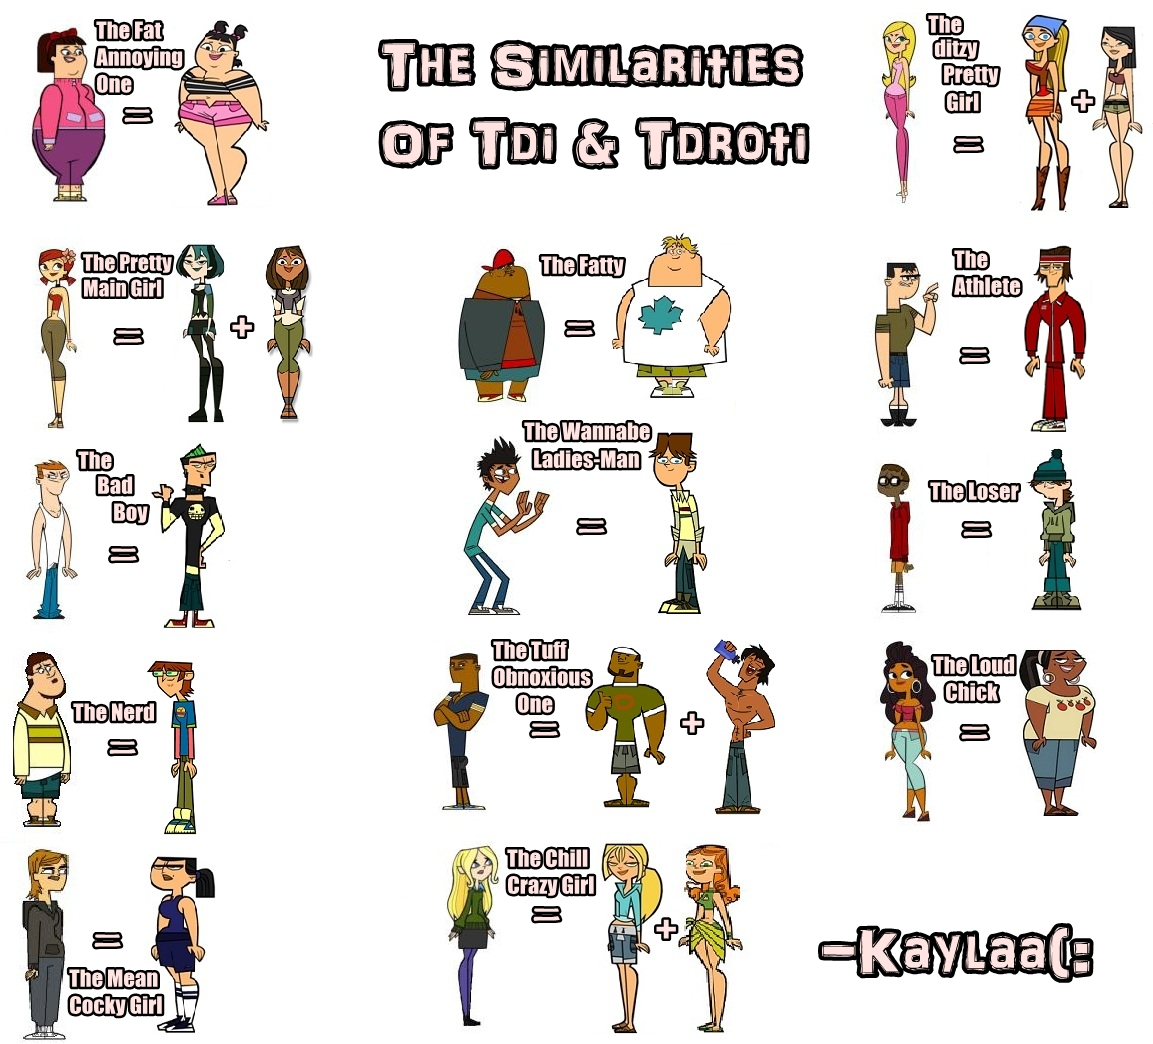 Tdi tdroti total drama island photo 30893516 fanpop for The book of life characters names